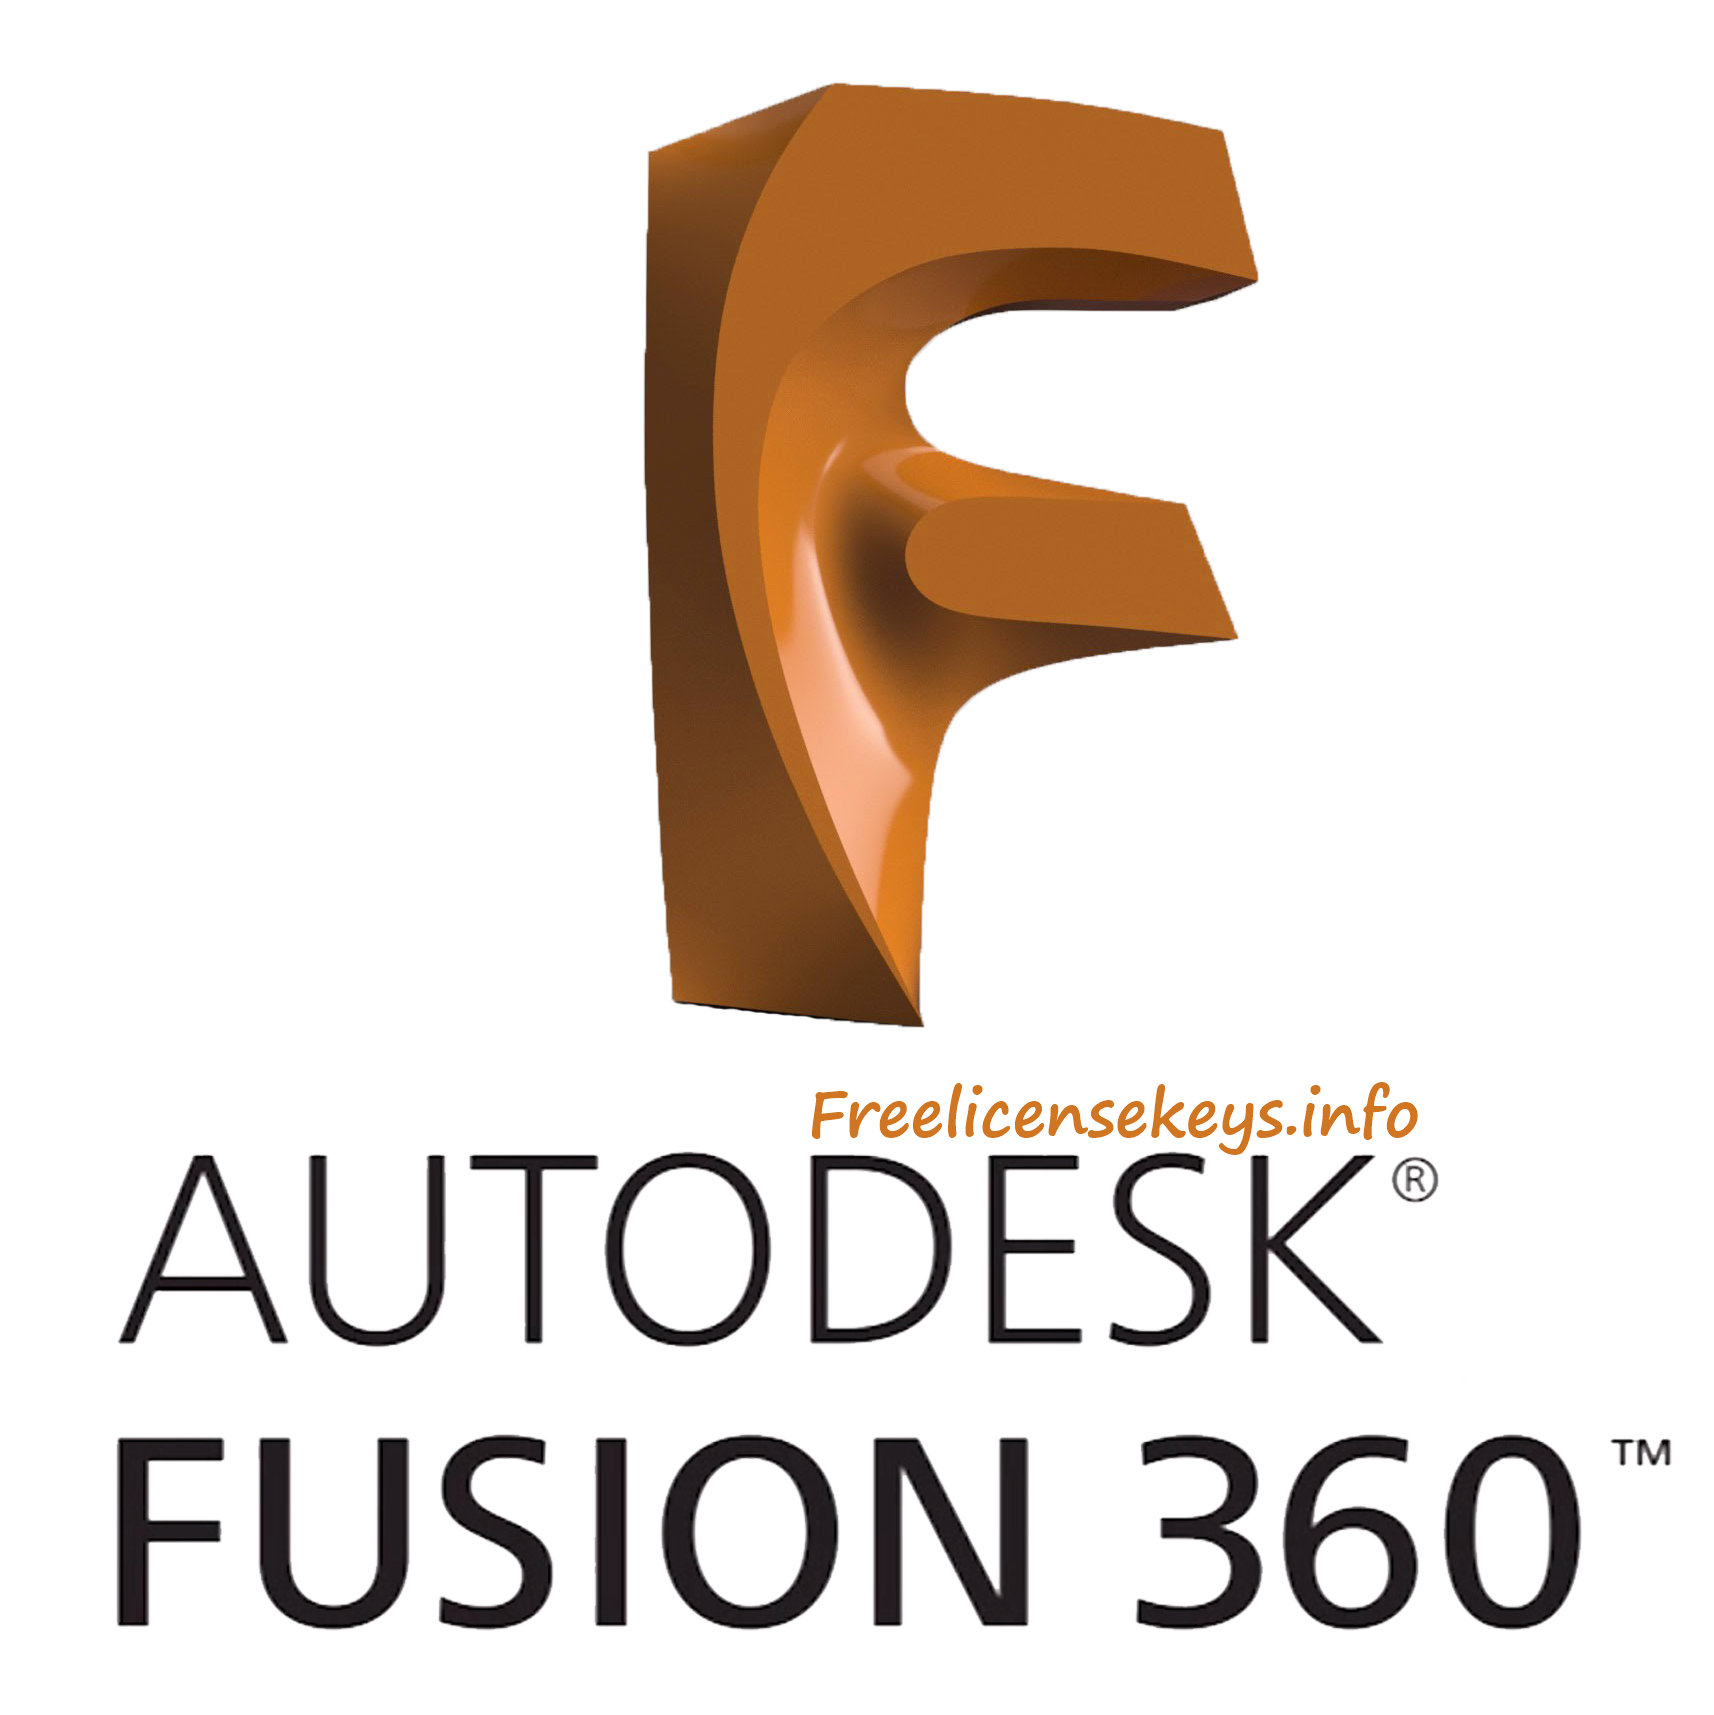 This is the logo of Autodesk Fusion 360 Crack